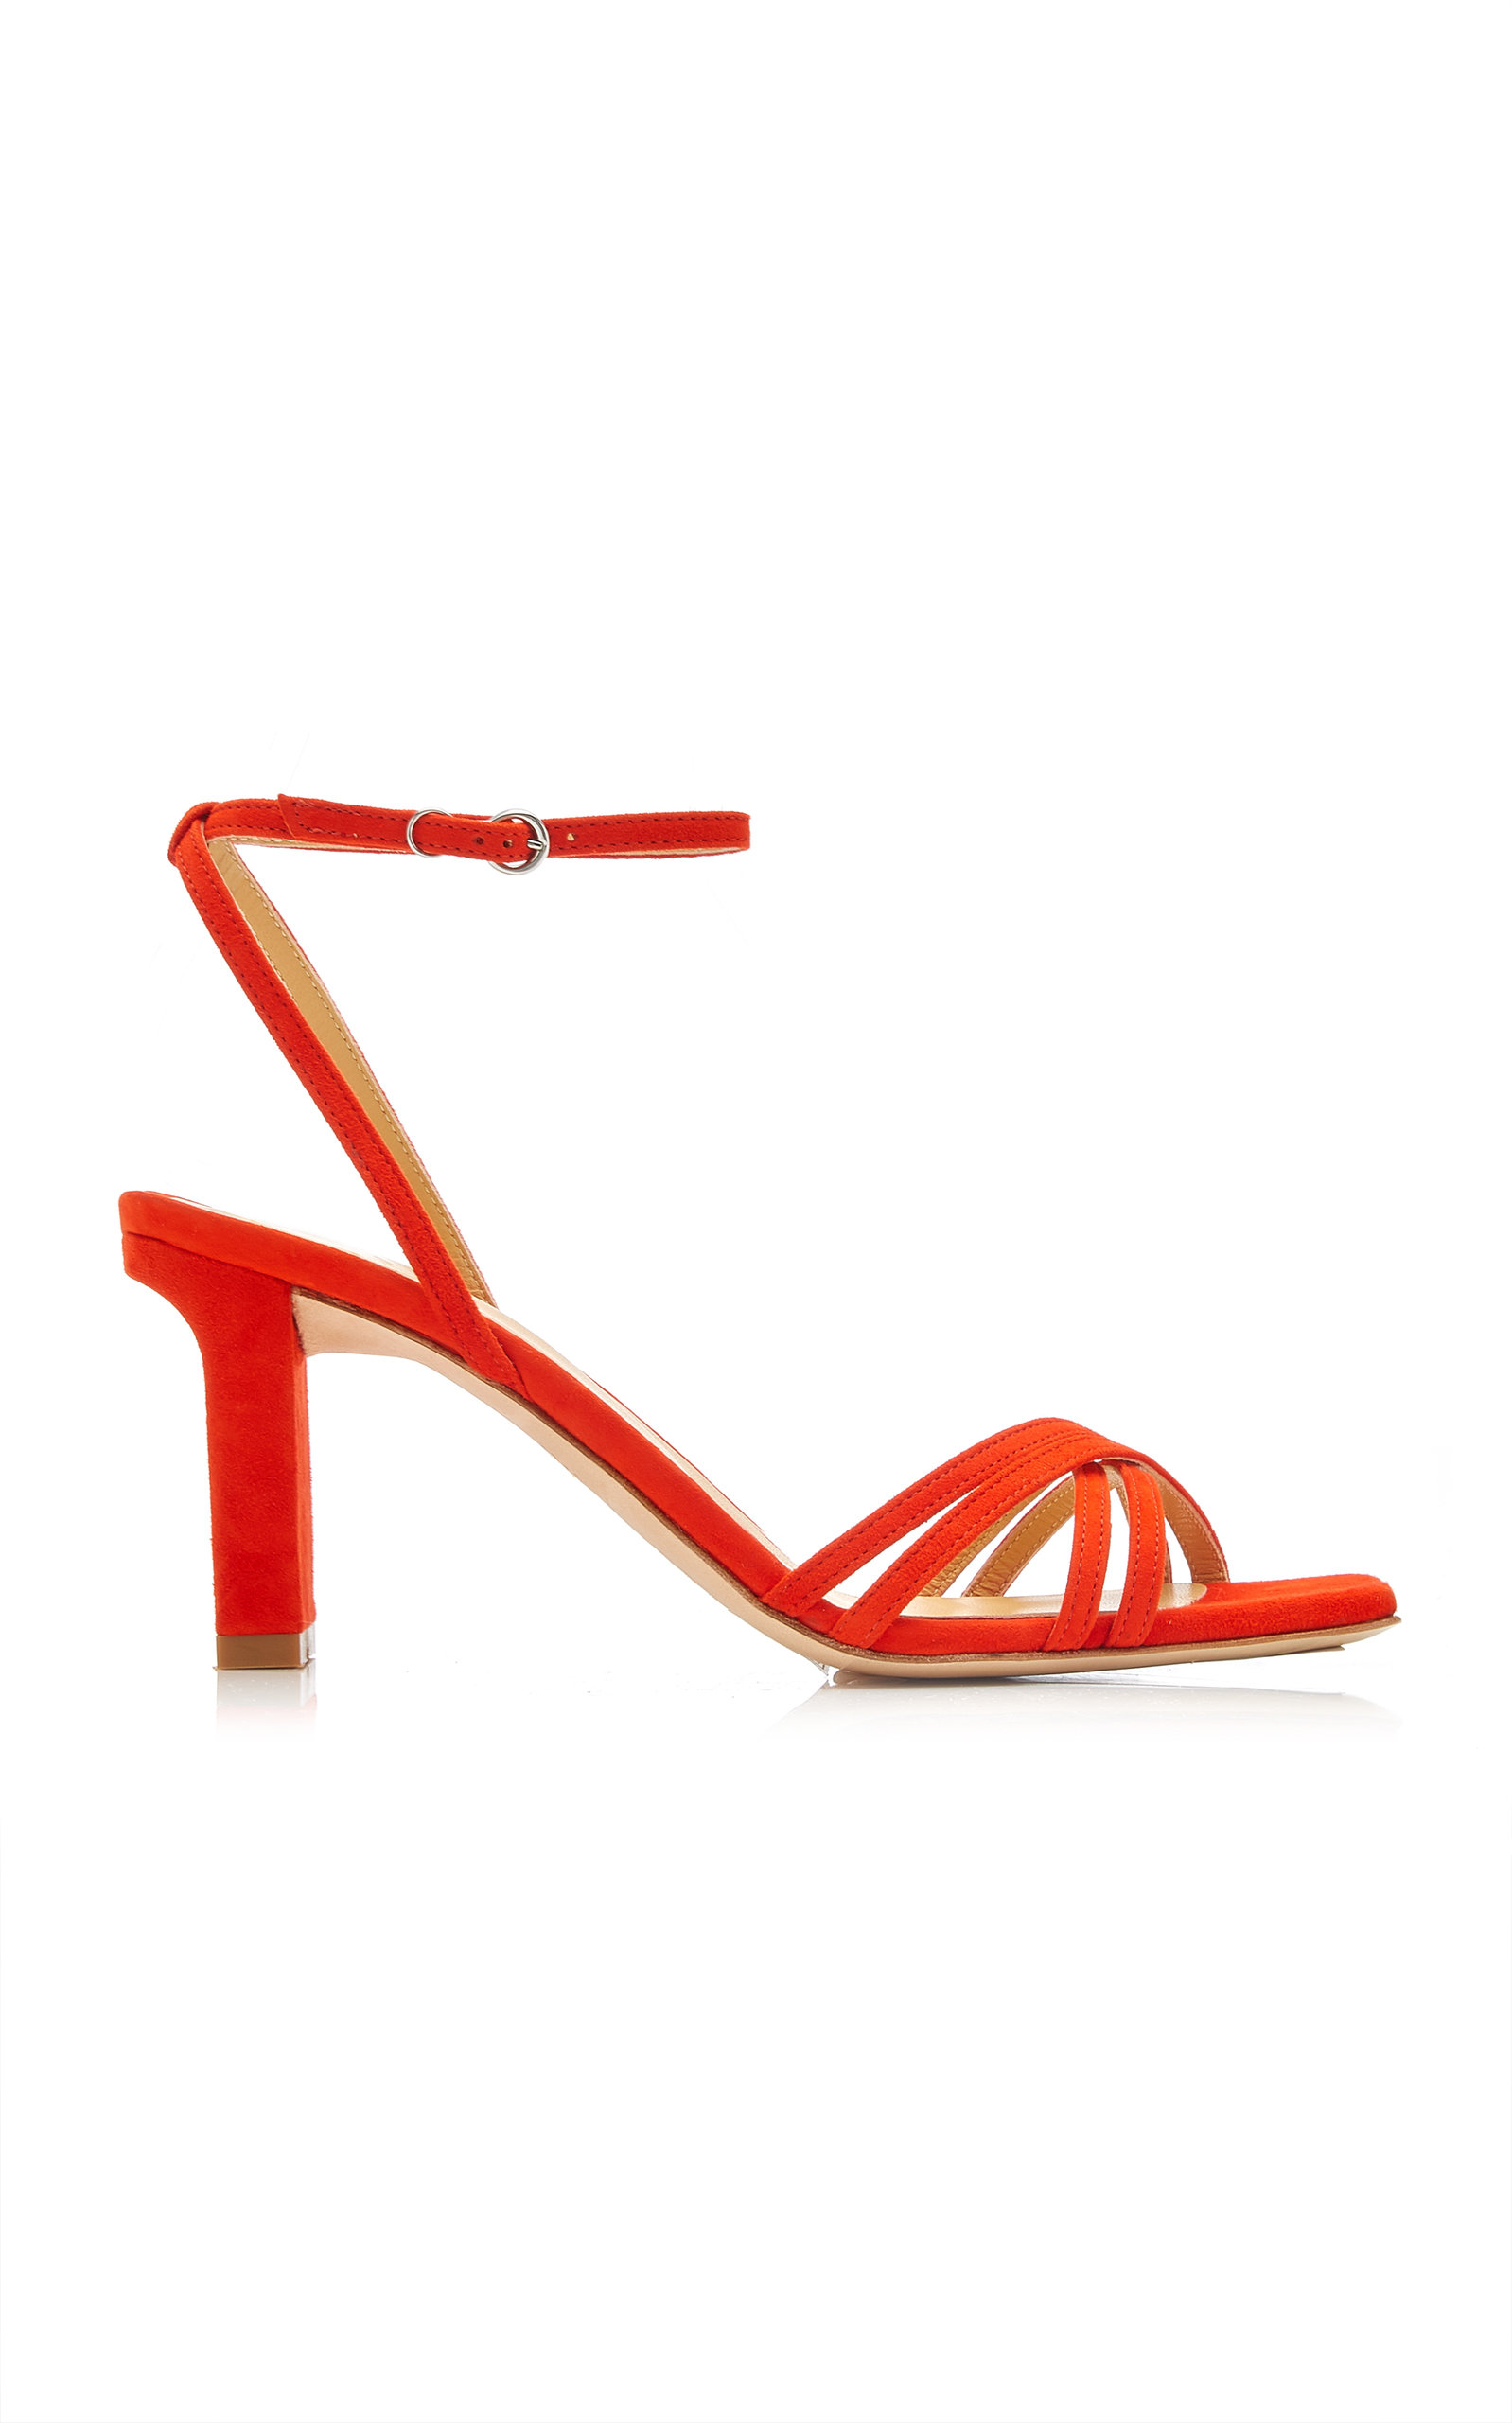 Aeyde ANNABELLE SNAKE-EFFECT SUEDE-LEATHER SANDALS